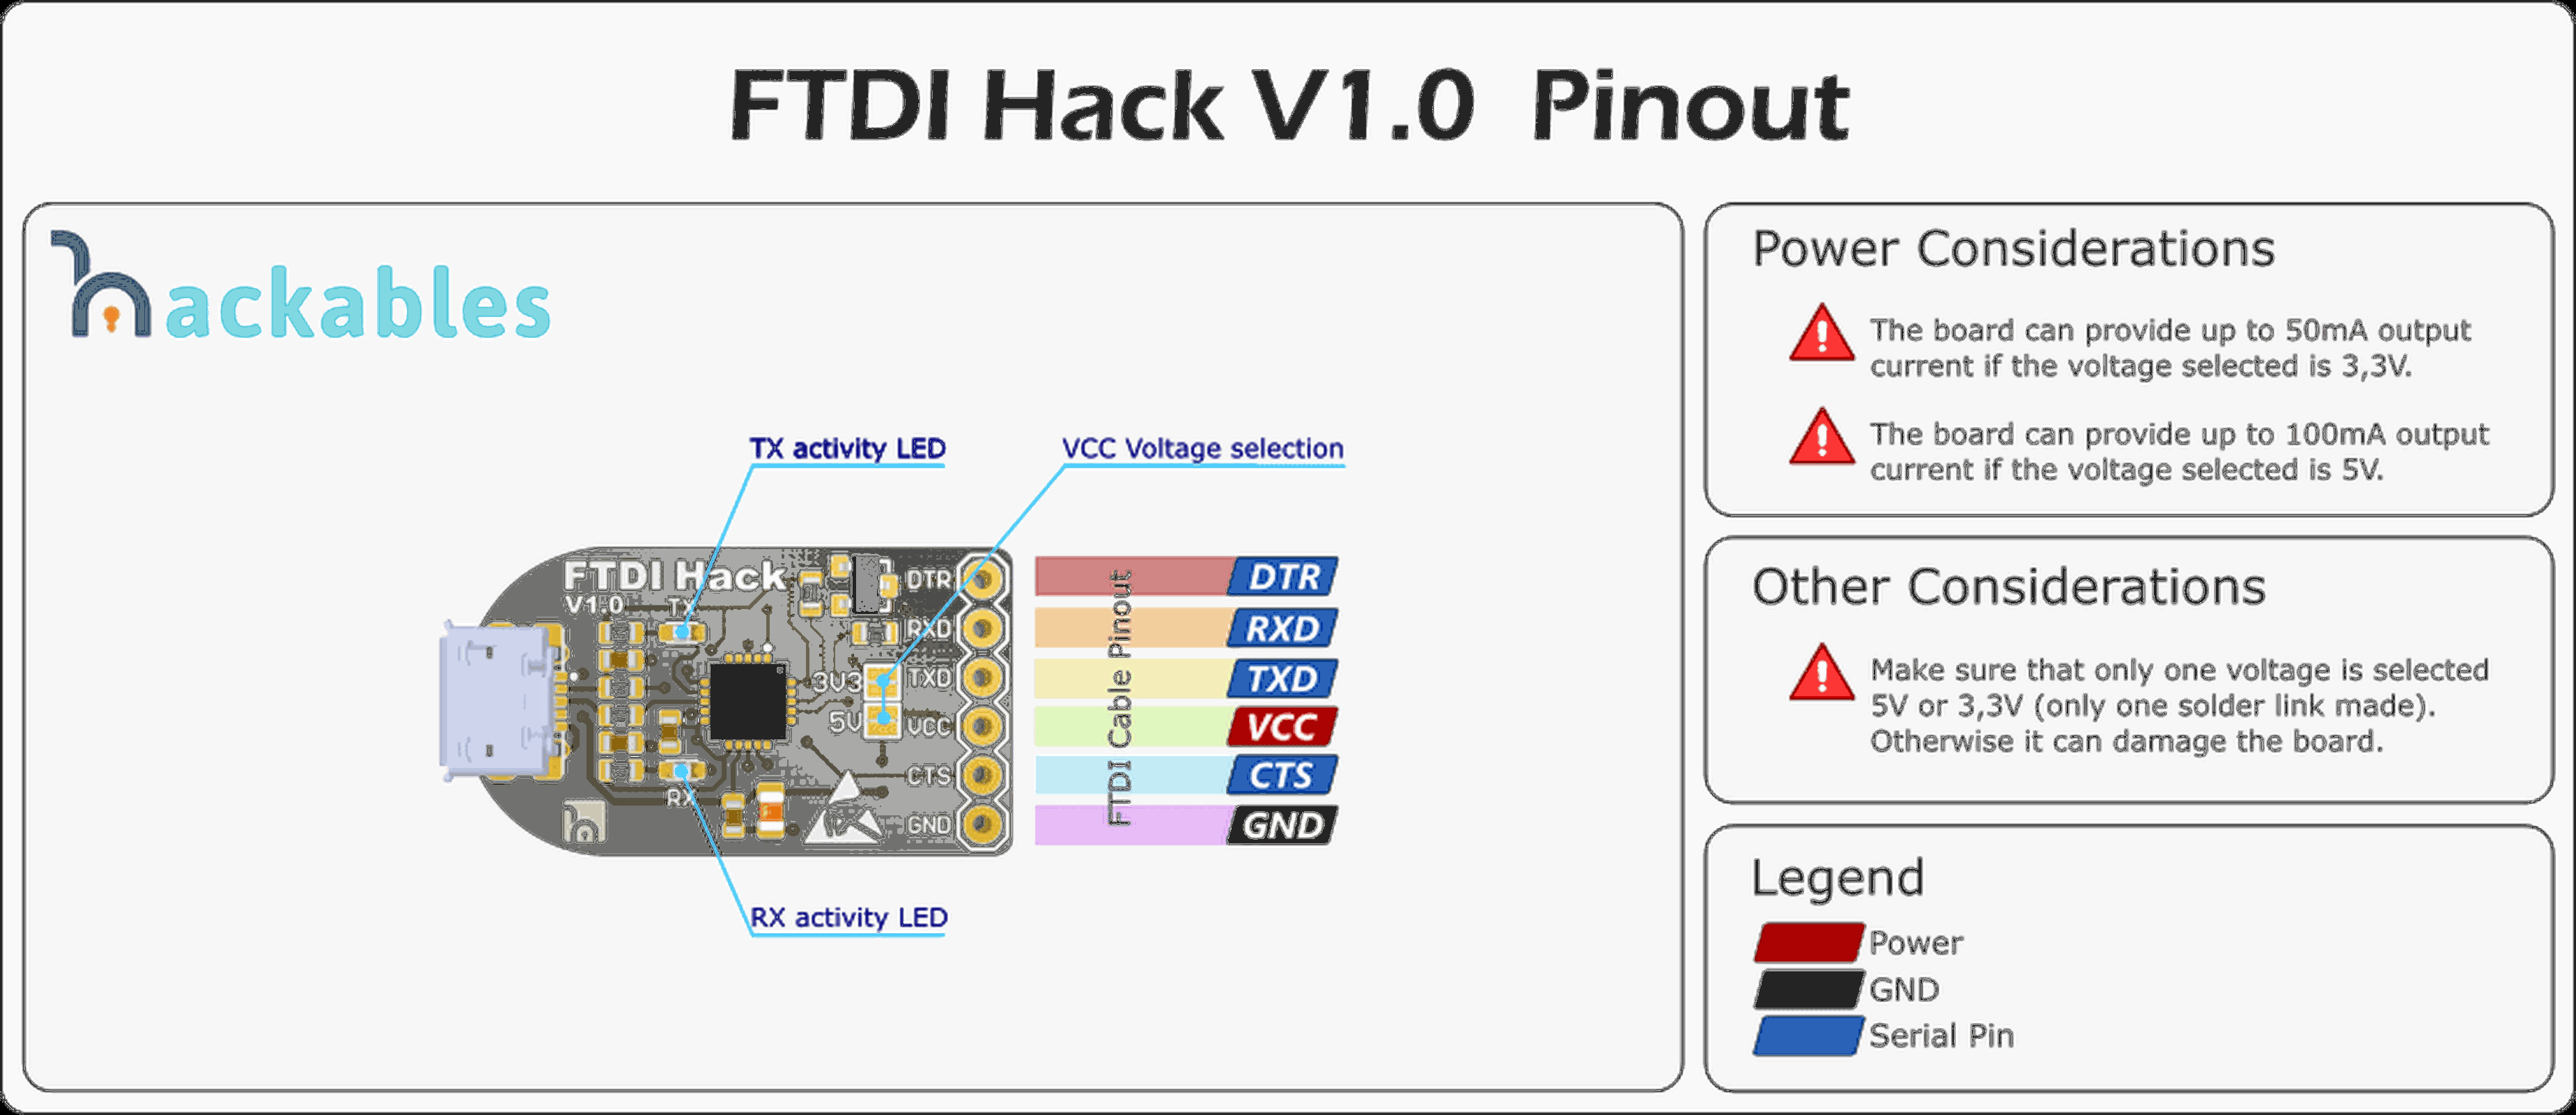 Ftdi Chip Pinout Serial Diagram Awesome Rs232 Crossover Cable Schematic Hack From Hackables On Tindie